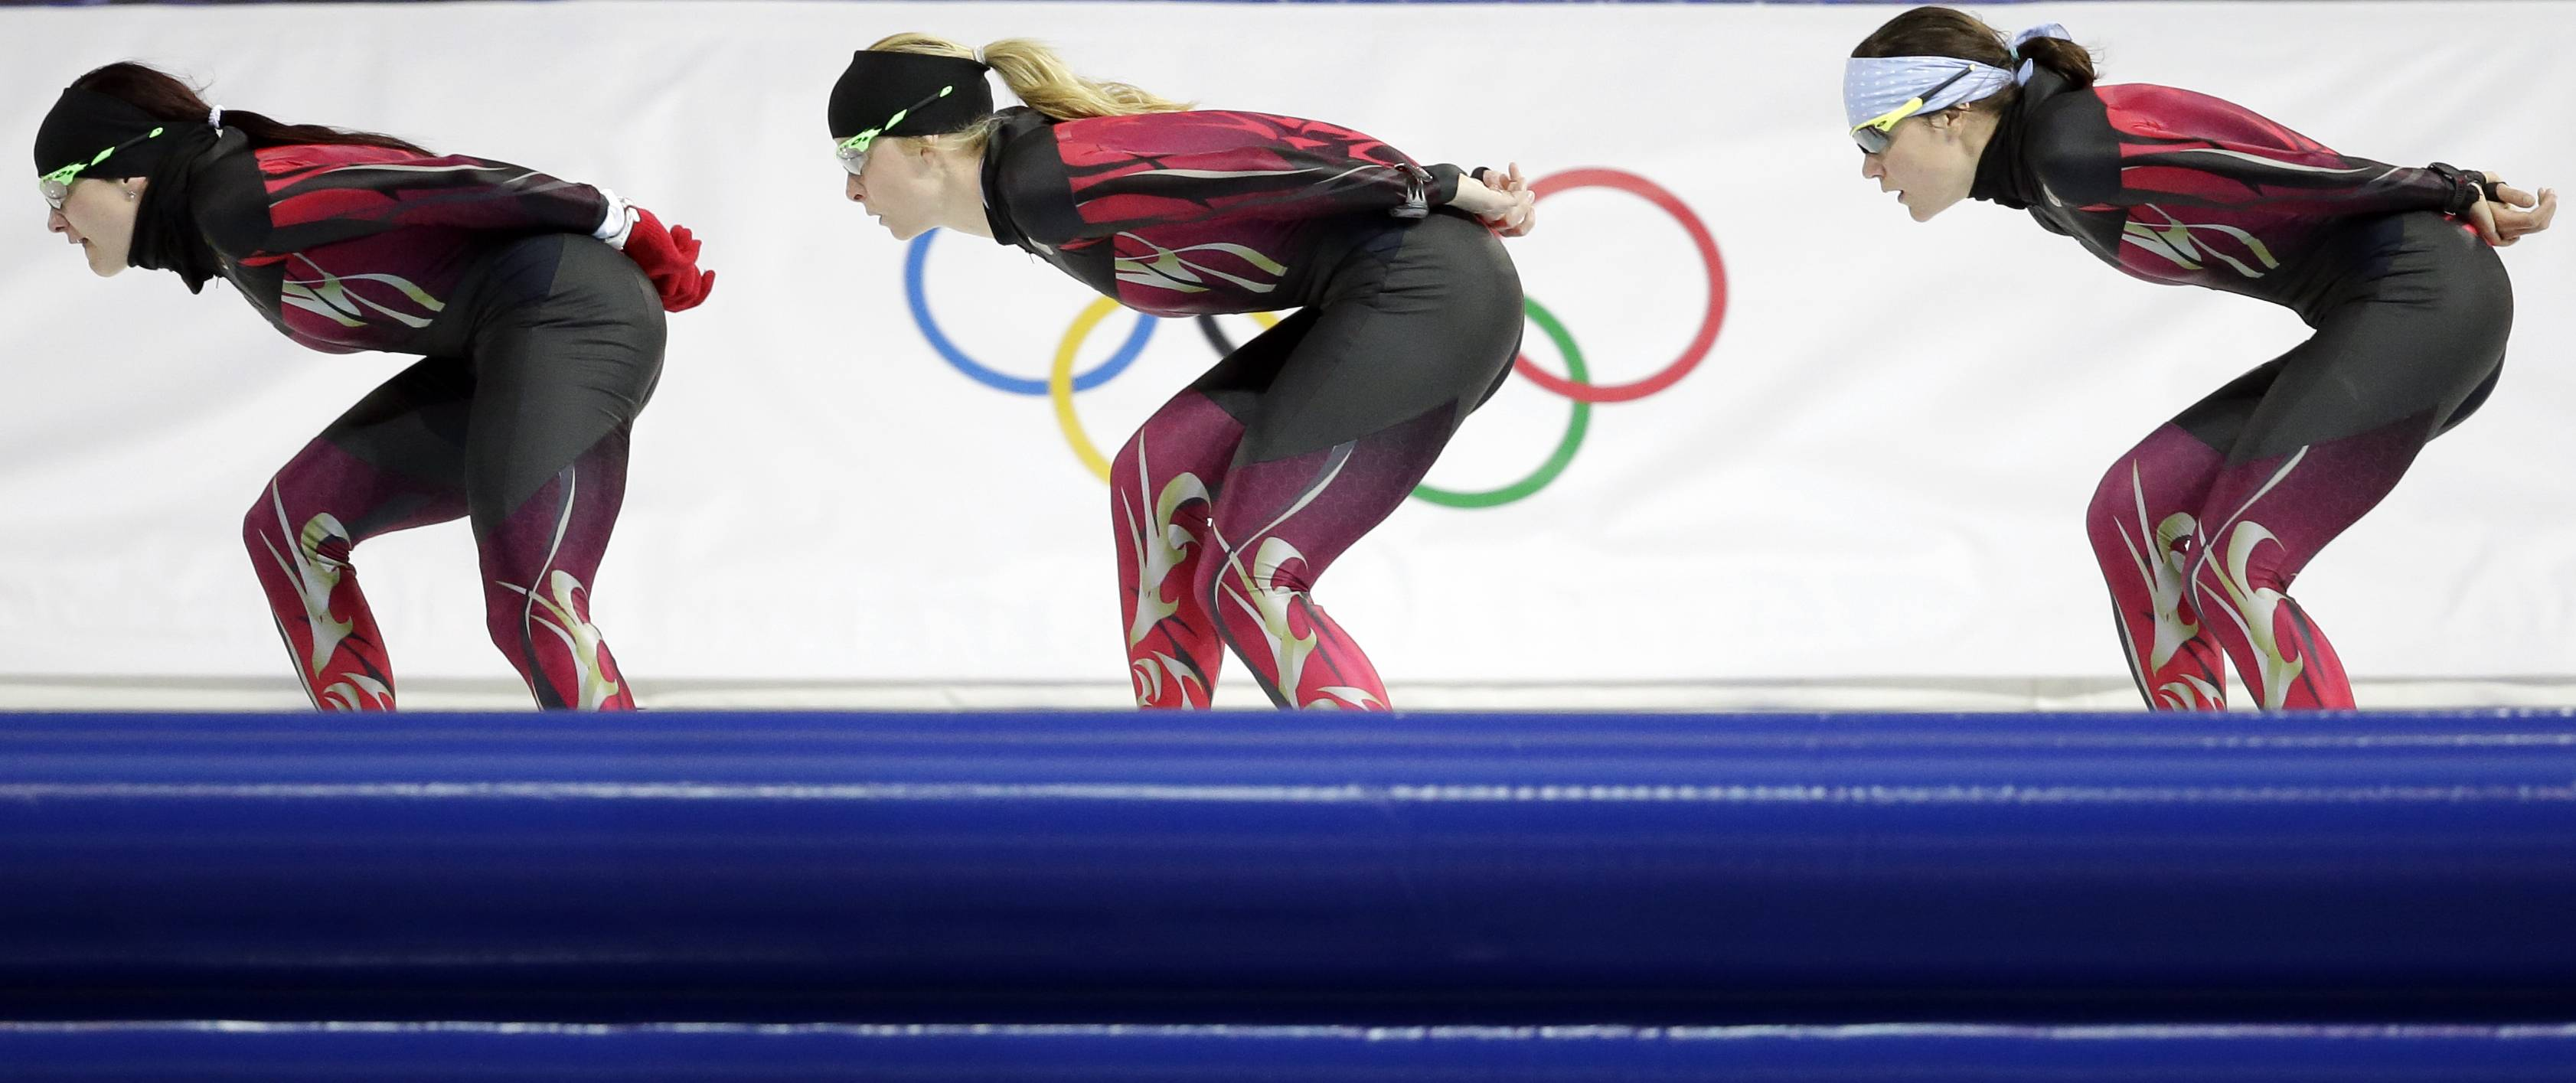 Germany's Judith Hesse, left, Stephanie Beckert, center, and Gabriele Hirschbichler train at the Adler Arena Skating Center during the 2014 Winter Olympics, Monday, Feb. 10, 2014, in Sochi, Russia.